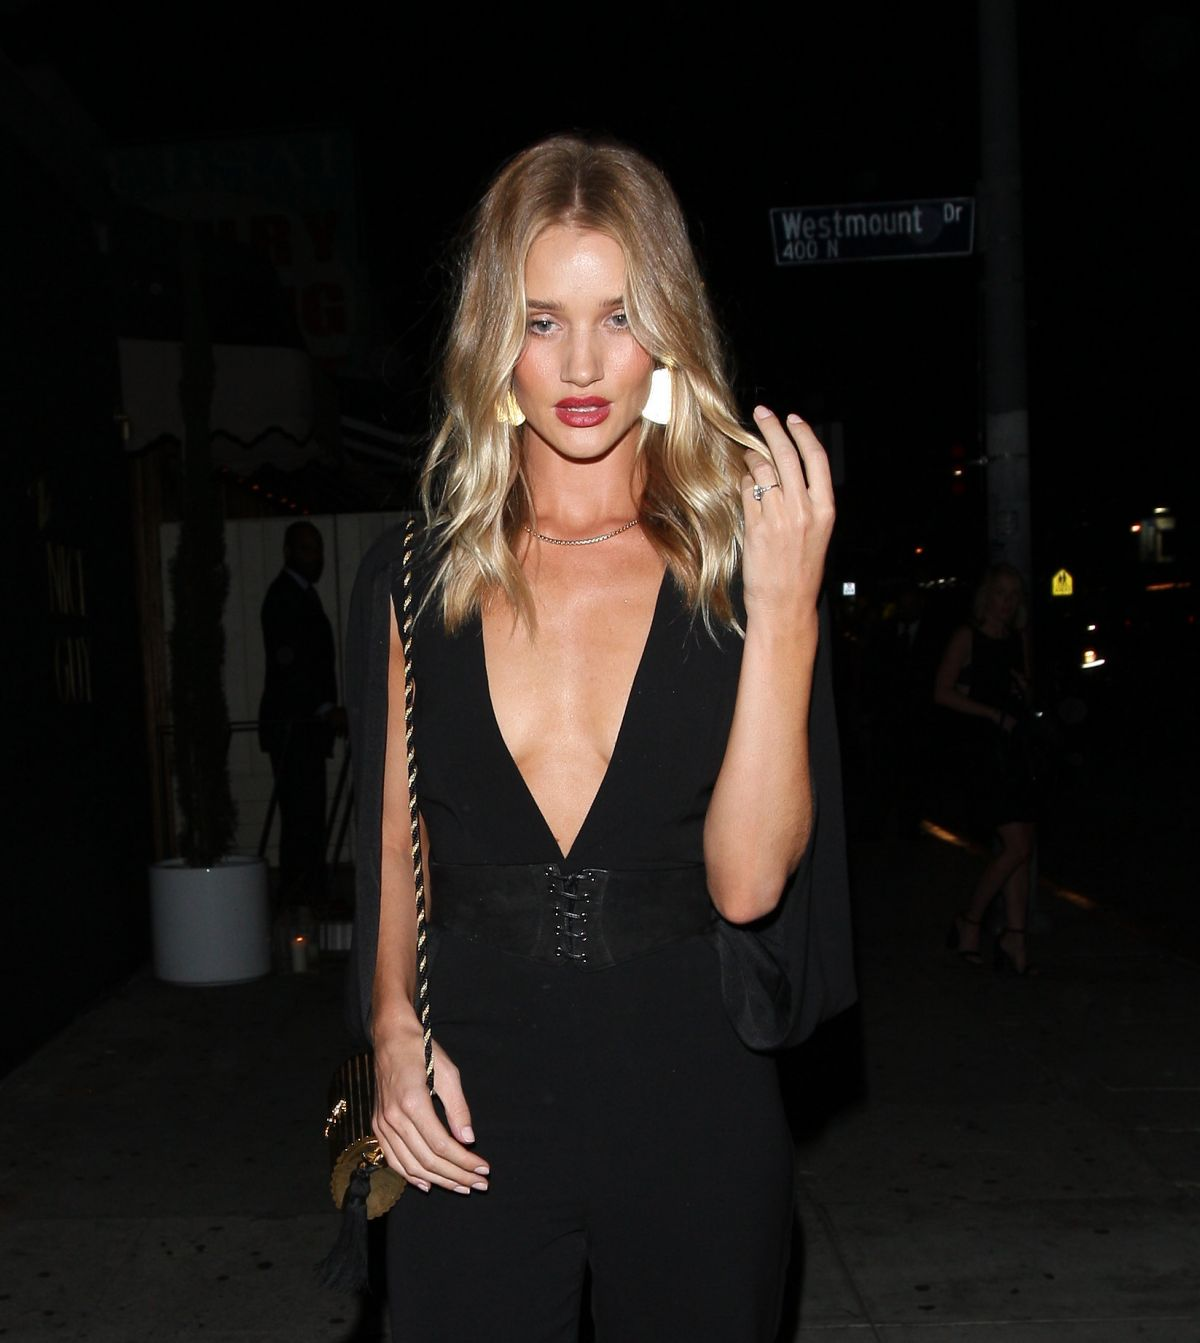 ROSIE HUNTINGTON-WHITELEY at Nice Guy in West Hollywood 07/01/2016 Rosie Huntington Whiteley